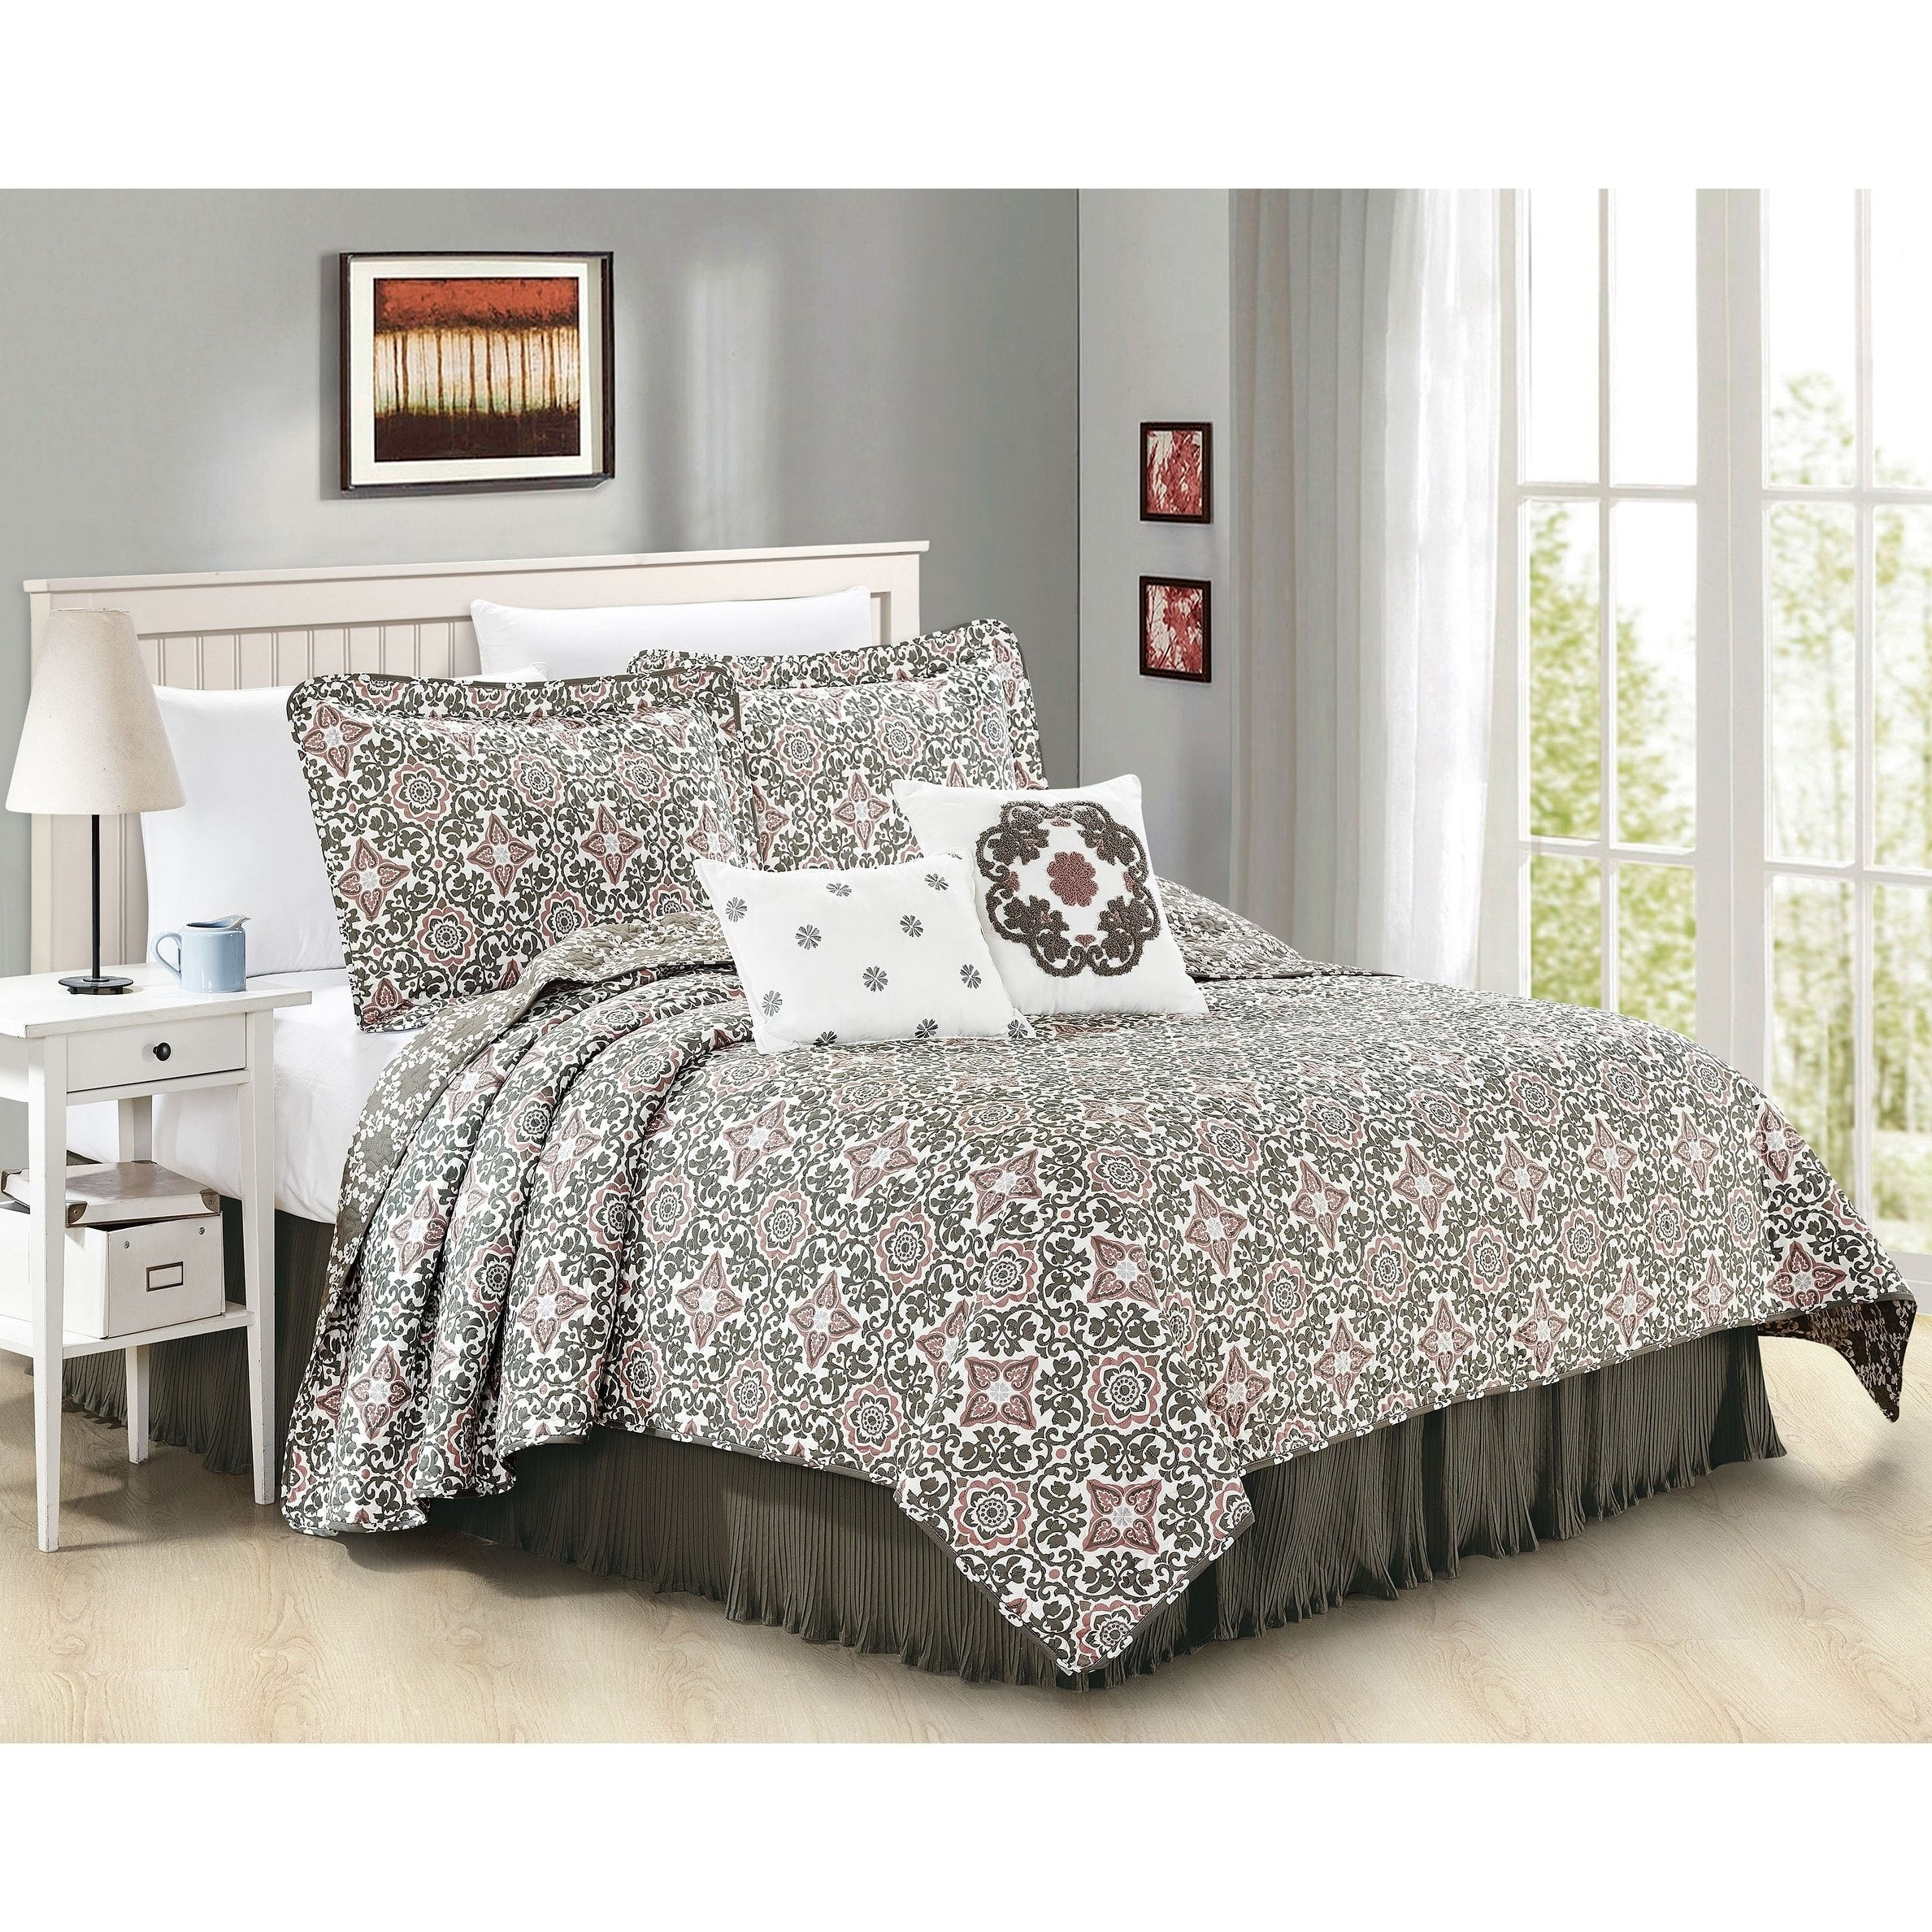 Serenta 6 Piece Coventry Printed Microfiber Quilts